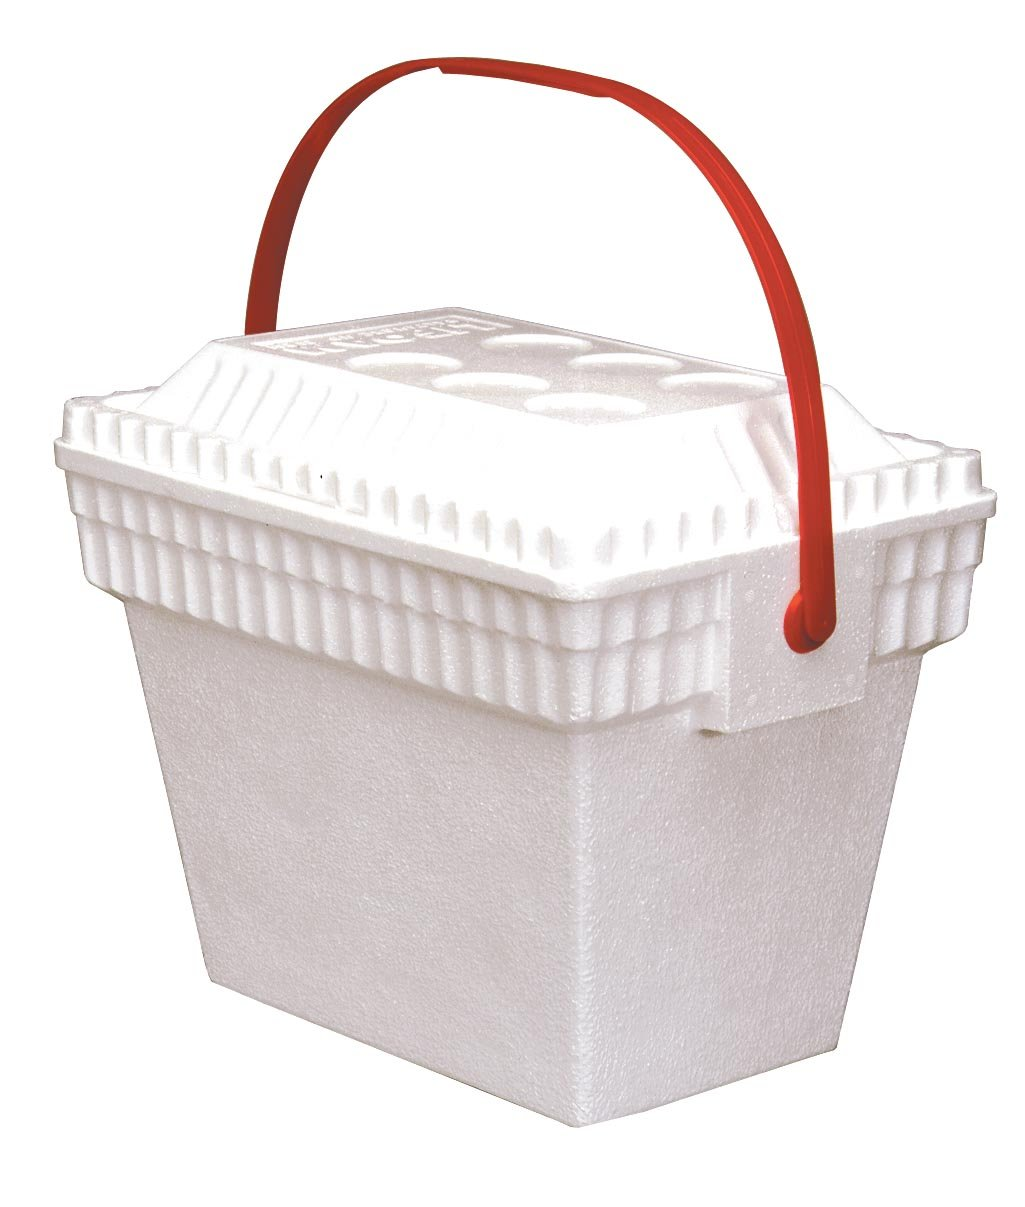 Lifoam 3552 Styrofoam Cooler Collection Picnic Chest with Handle